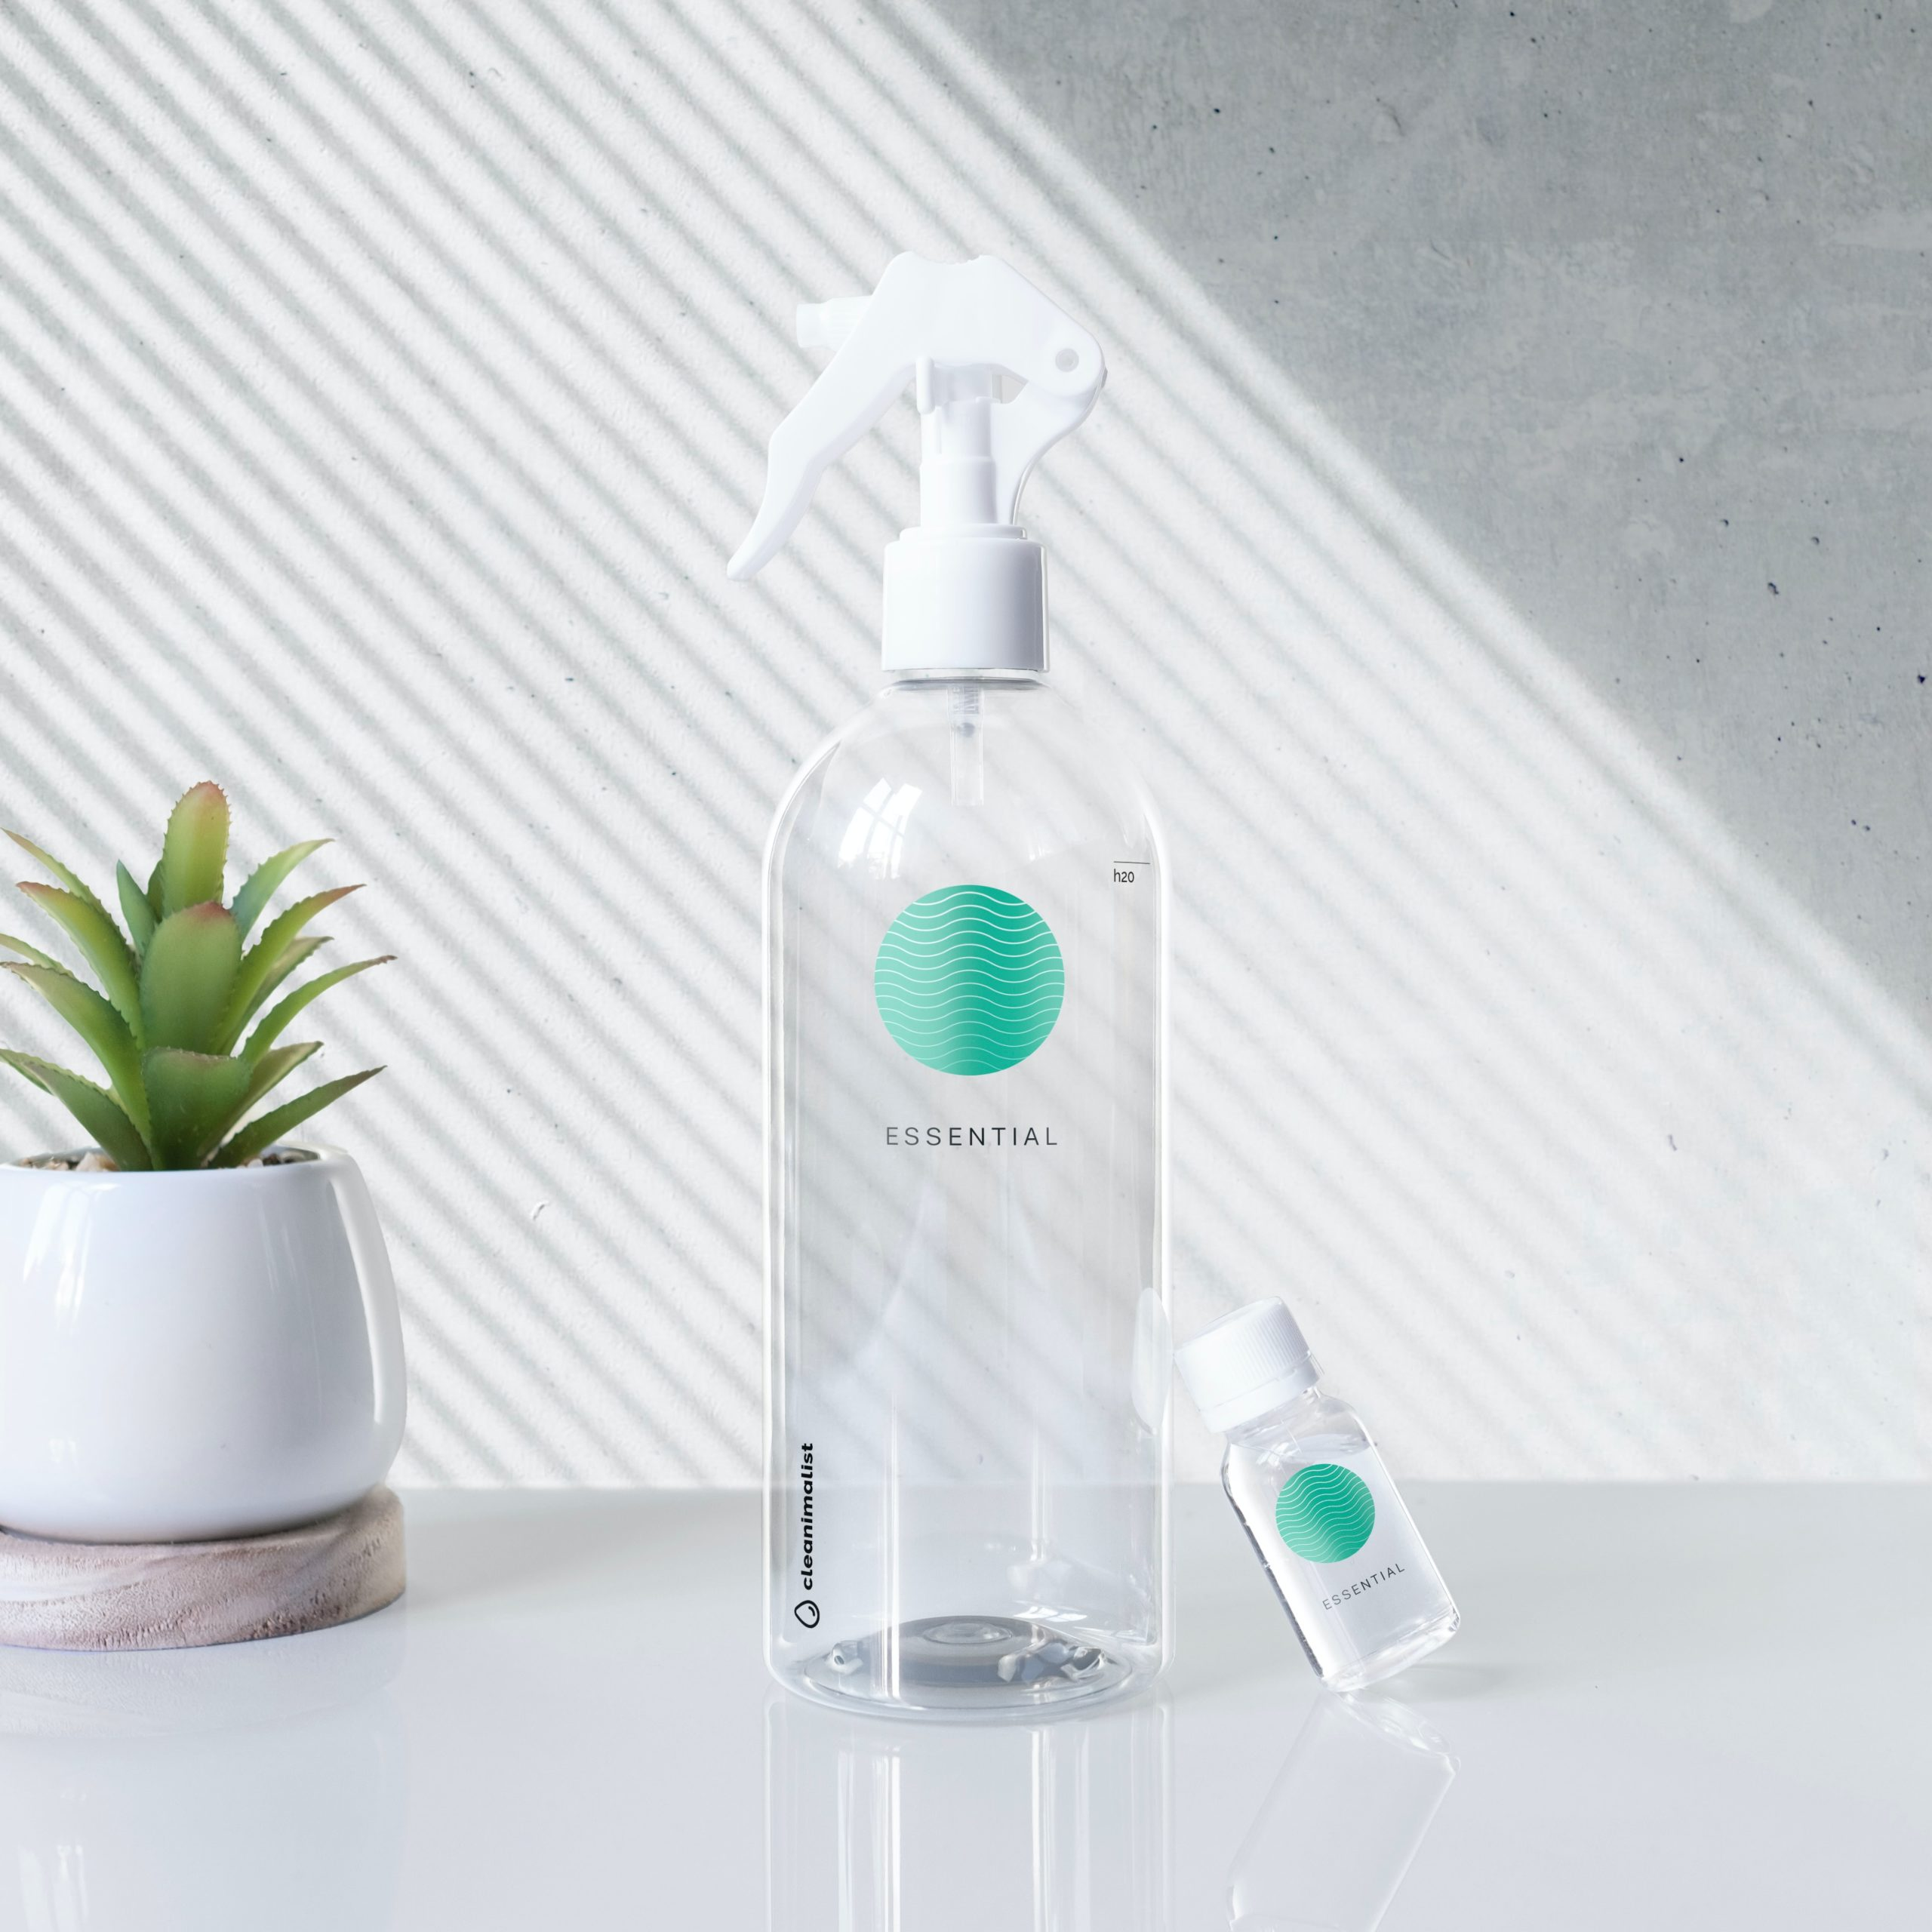 Bottle of Jennifer's Miracle Daily Shower Cleaner